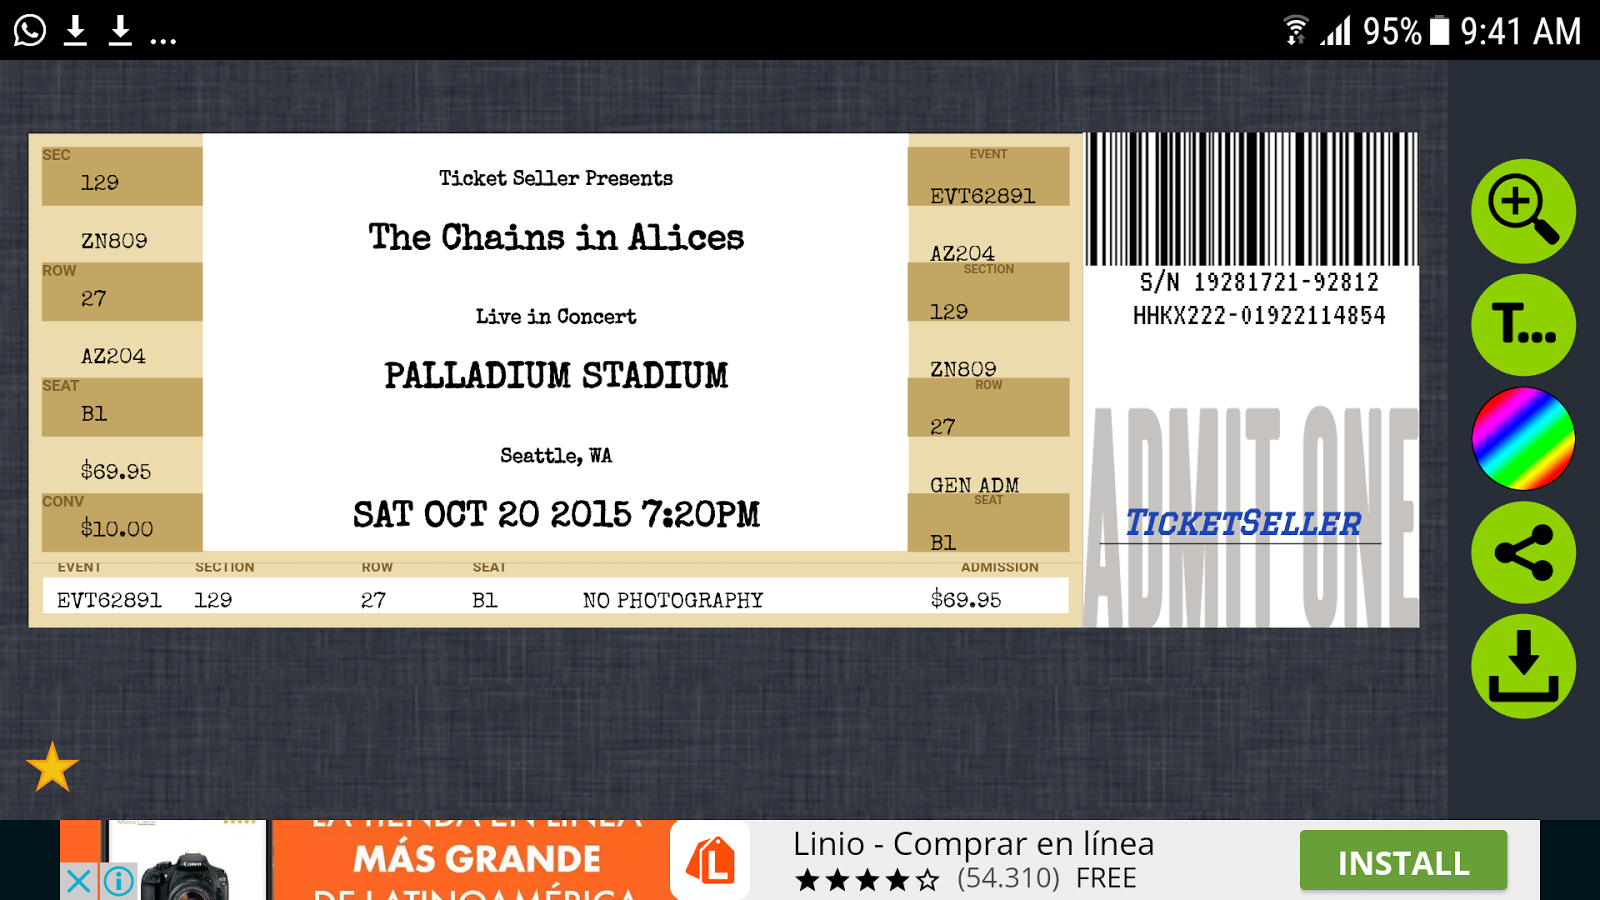 Fake Concert Ticket Generator Ticket Maker Android Apps on